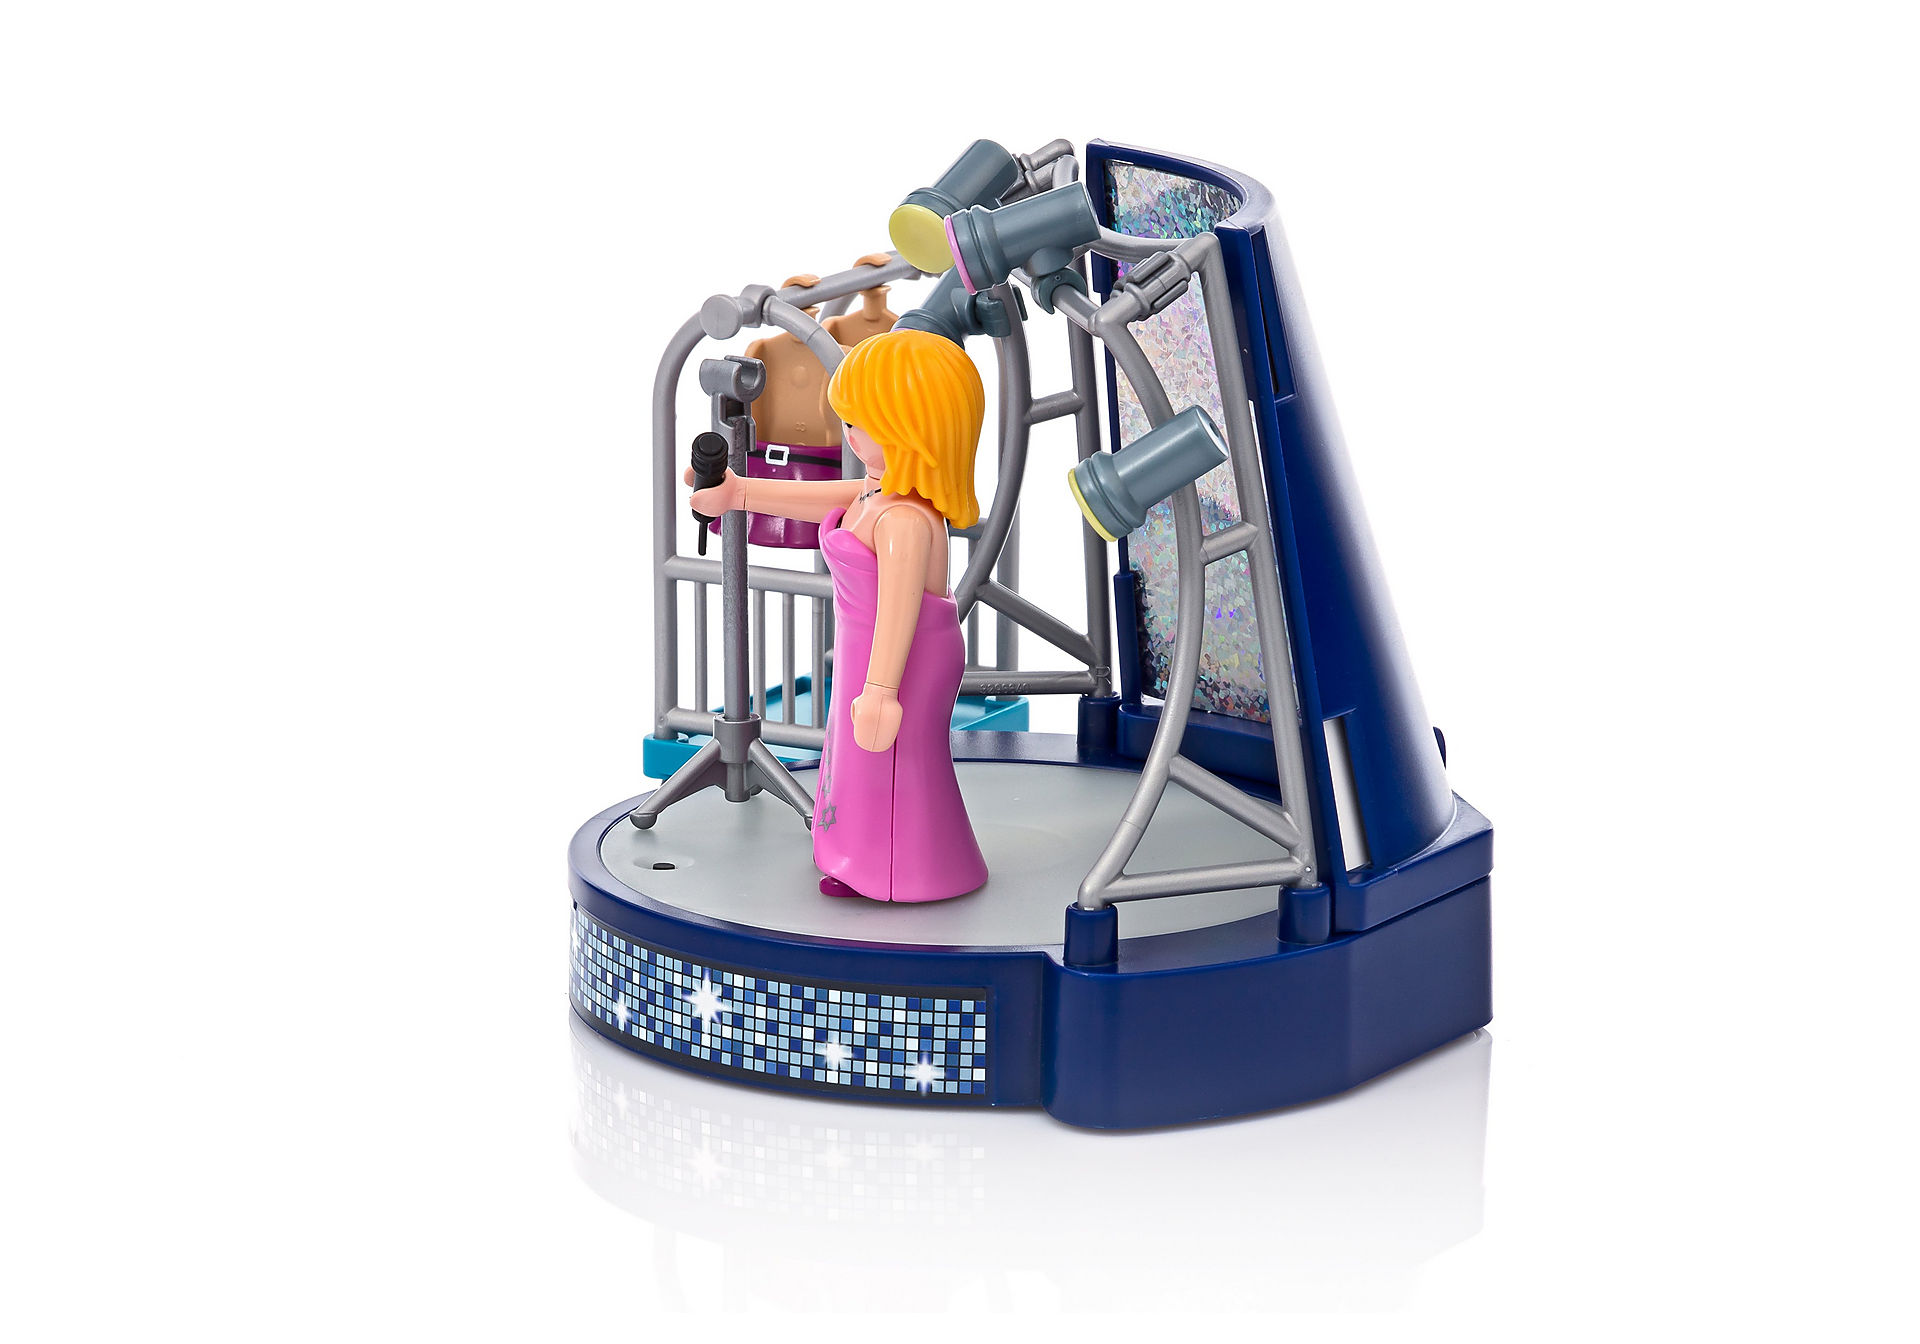 360degree image 10